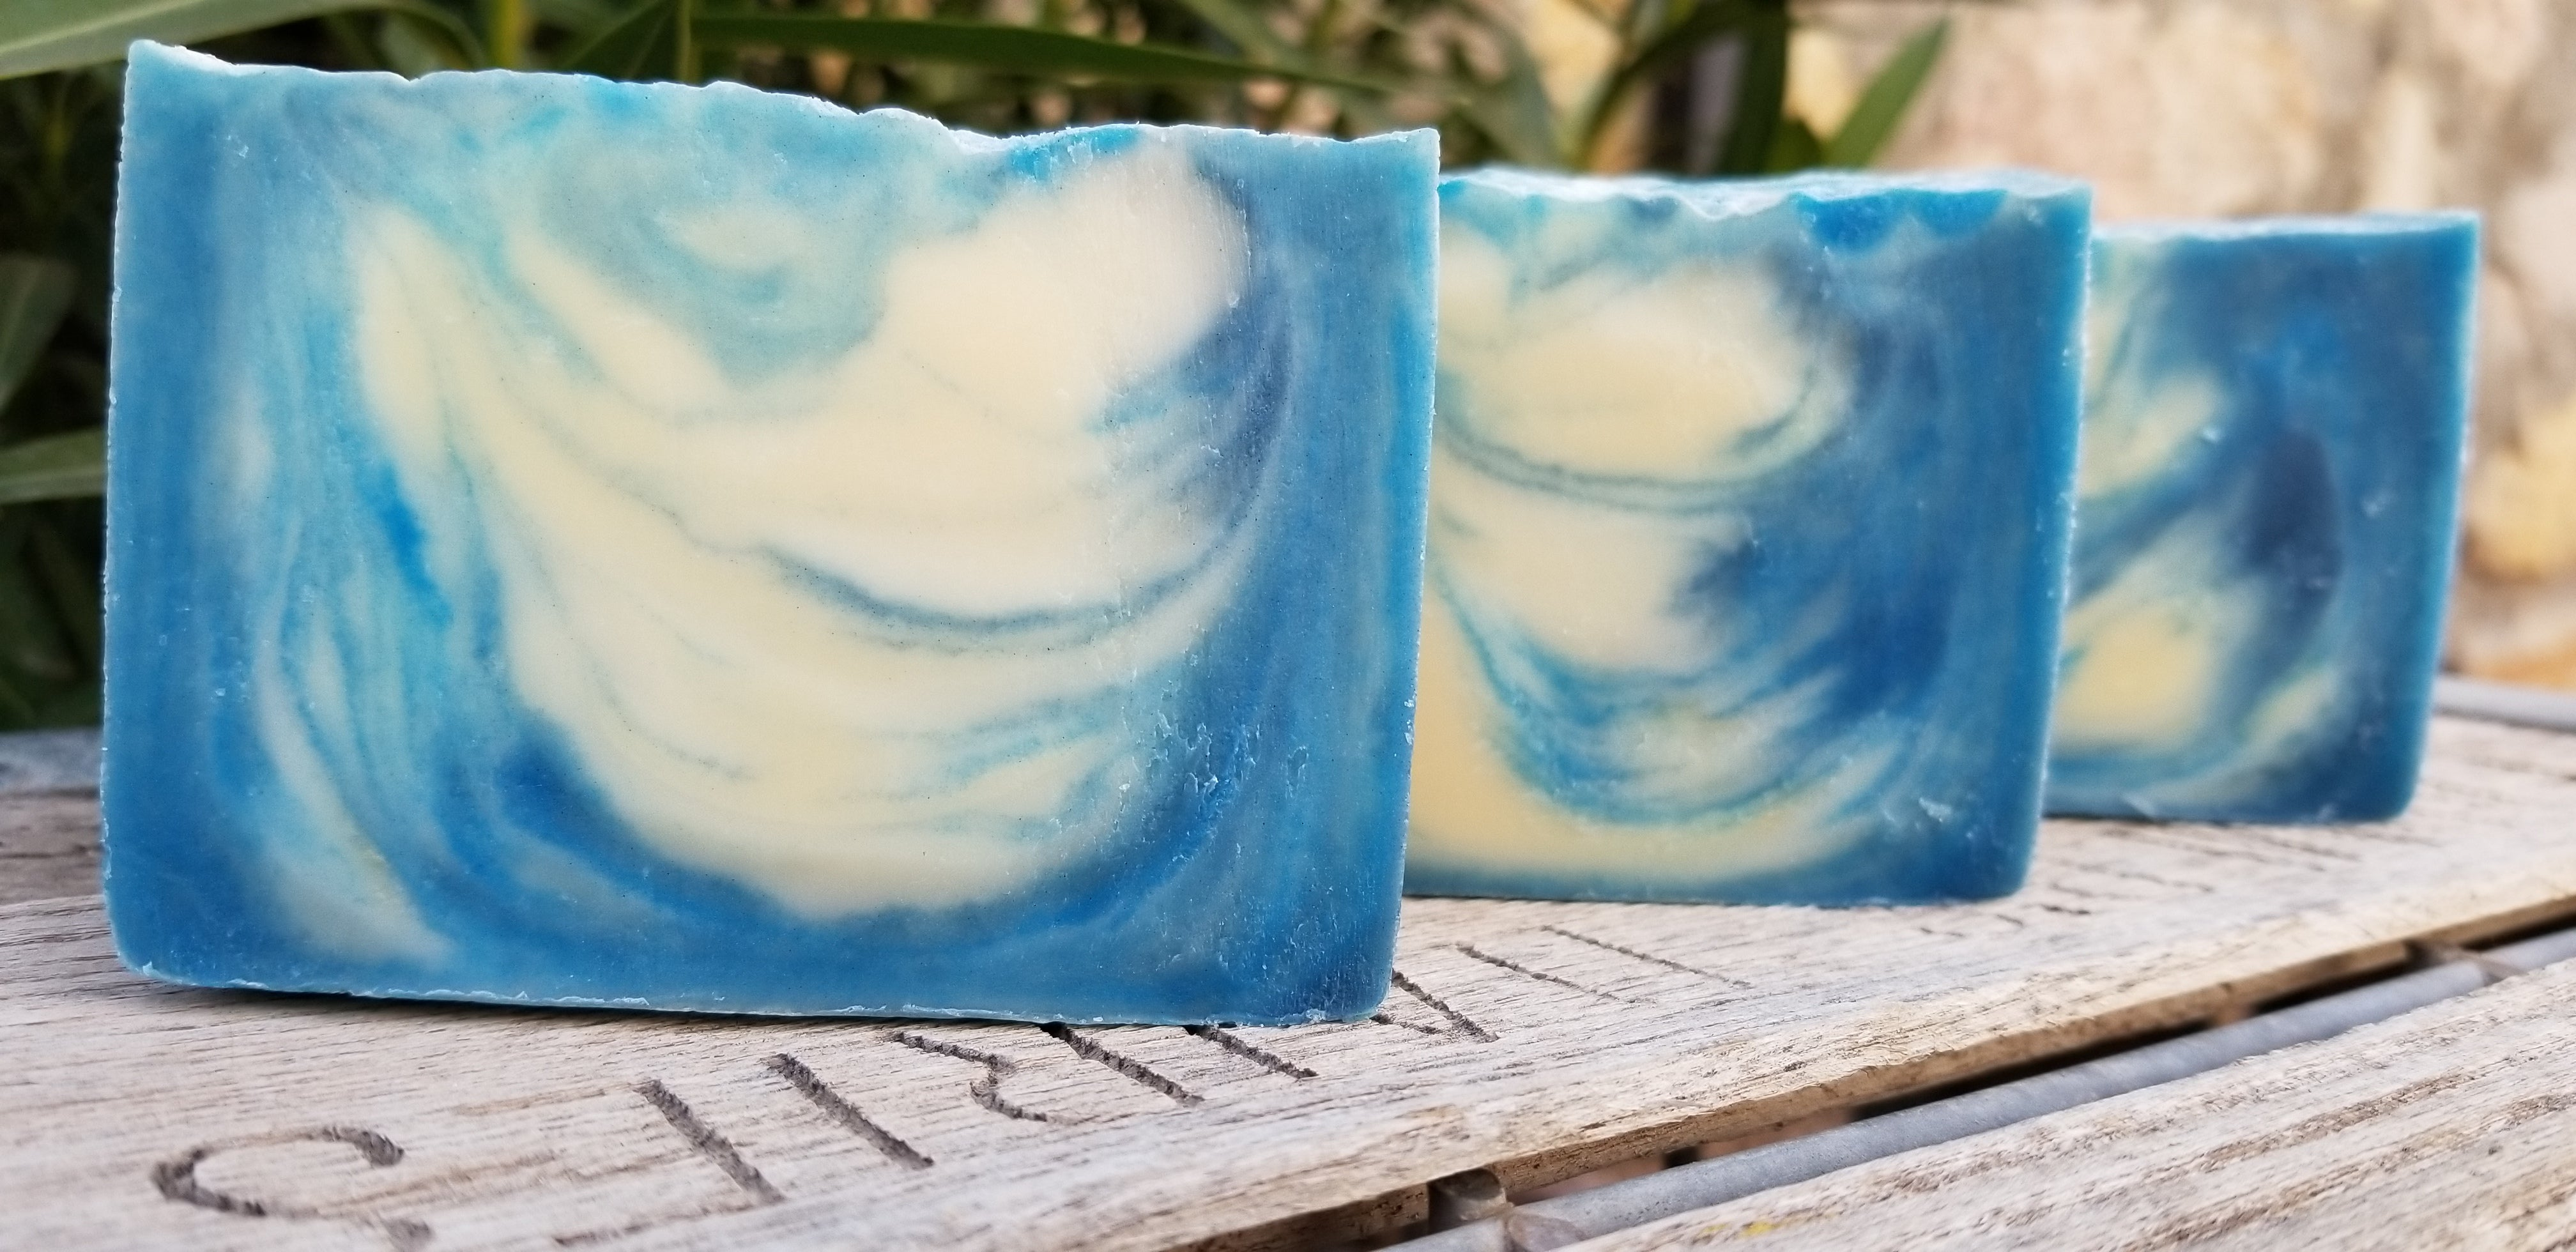 Pure Blue Cold-Process Handcrafted Soap